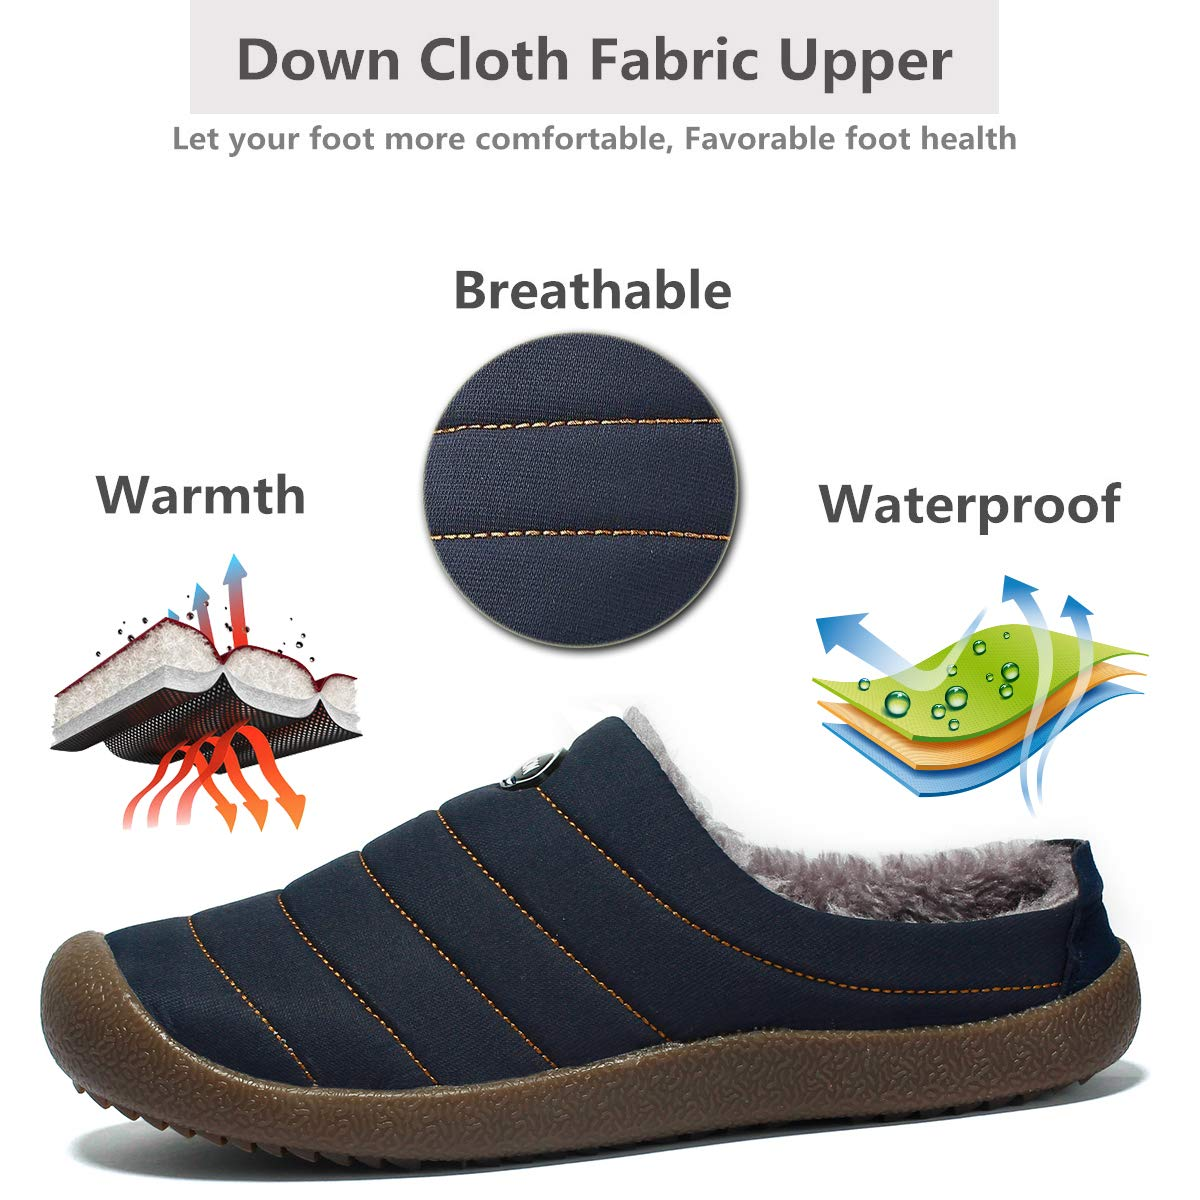 6fa0eb73a4572 YOOEEN Mens Womens Indoor Outdoor Slippers Waterproof Fur Lined House  Slippers Winter Snow Warm Shoes Breathable larger image